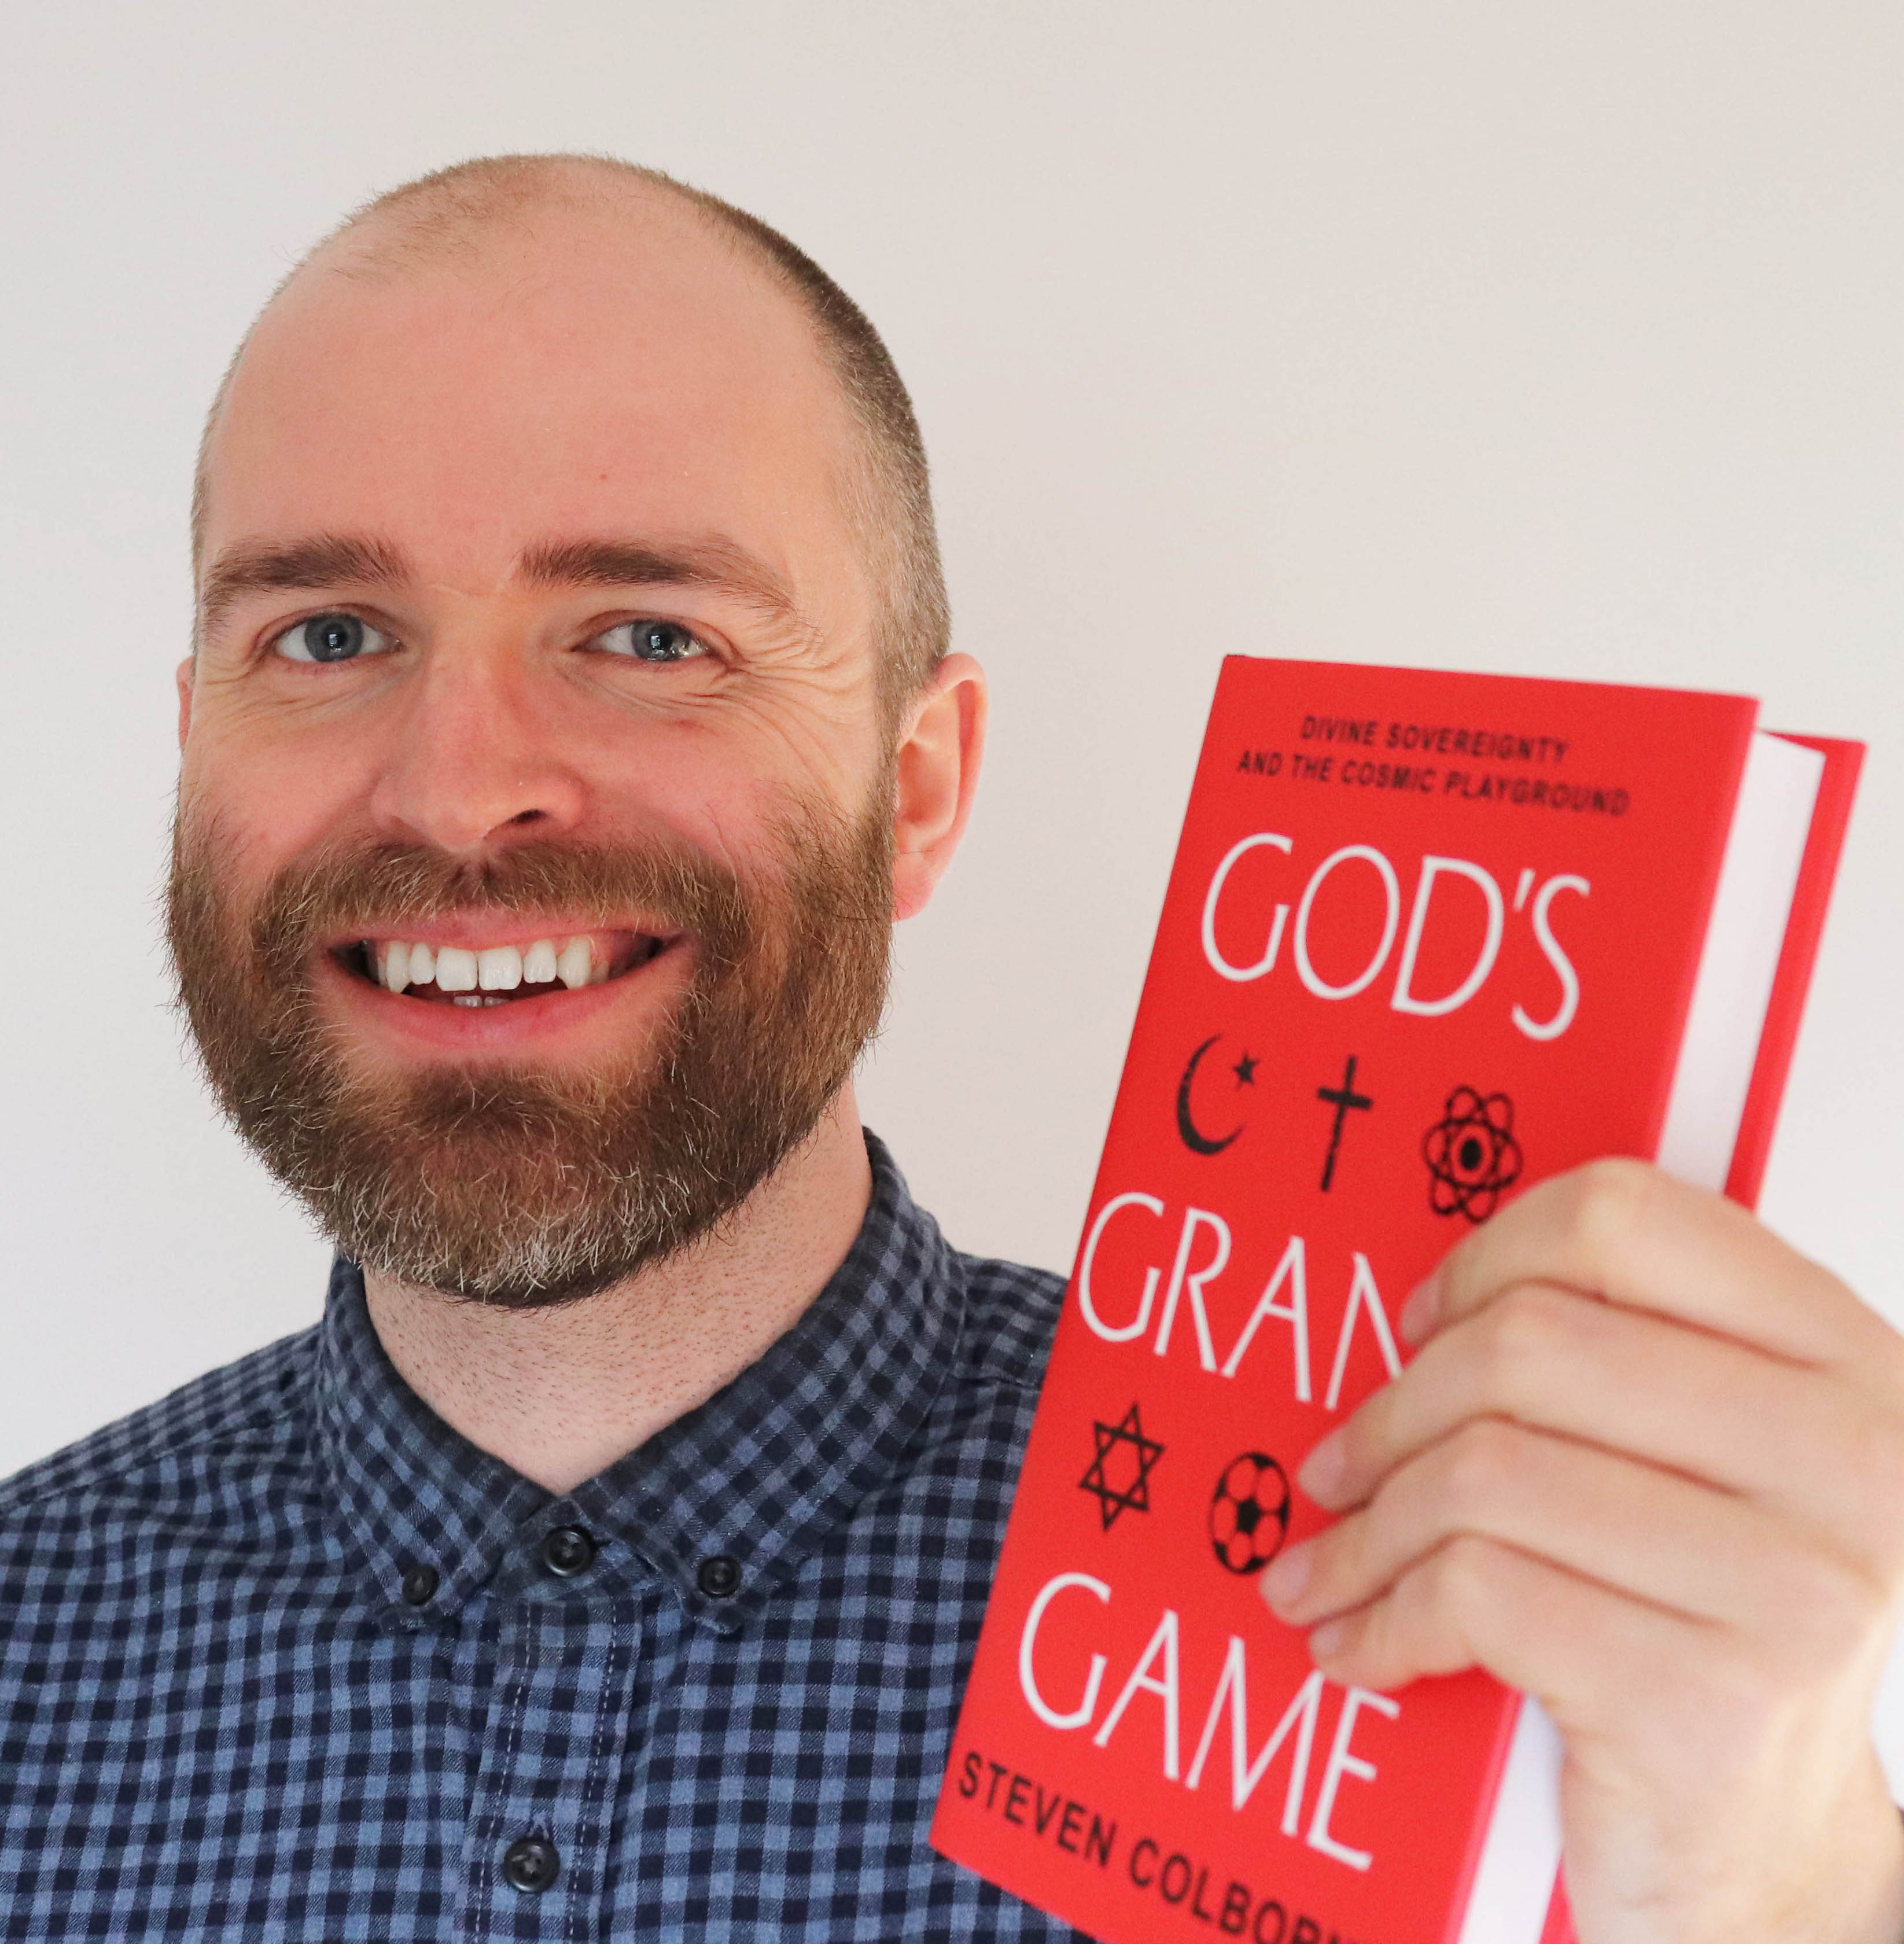 Steven Colborne holding a copy of God's Grand Game